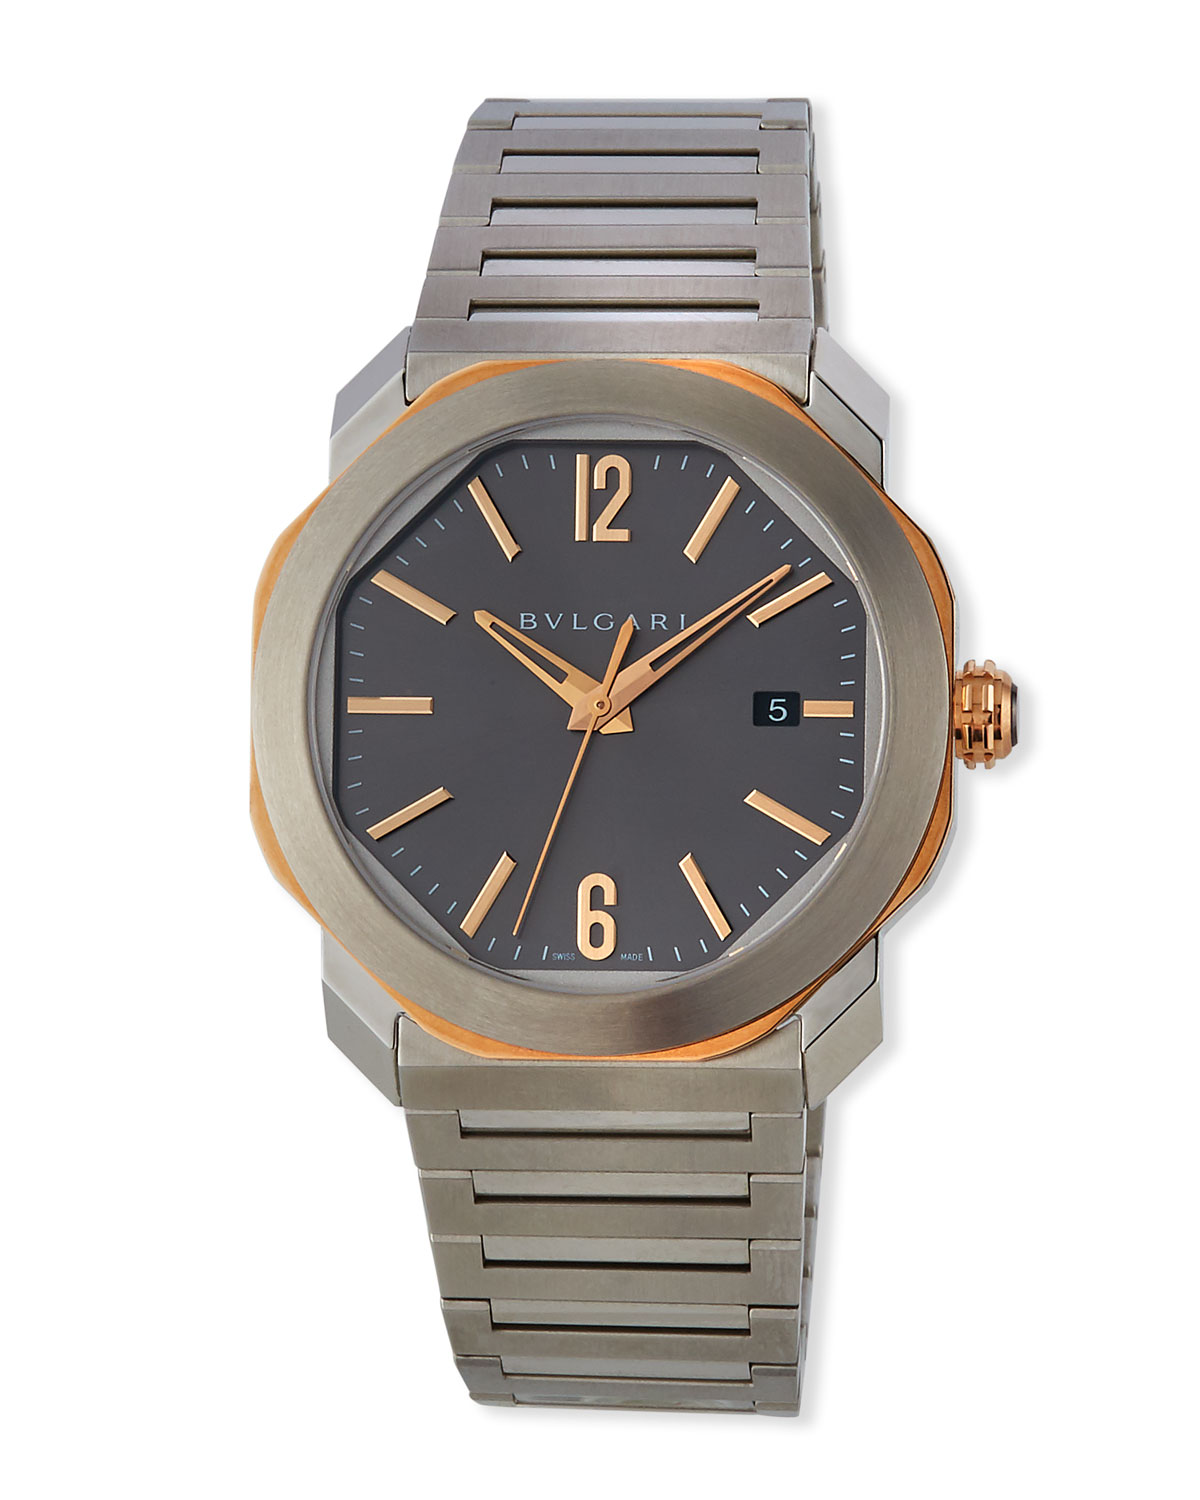 Men's 41mm Octo Roma Bracelet Watch with Date